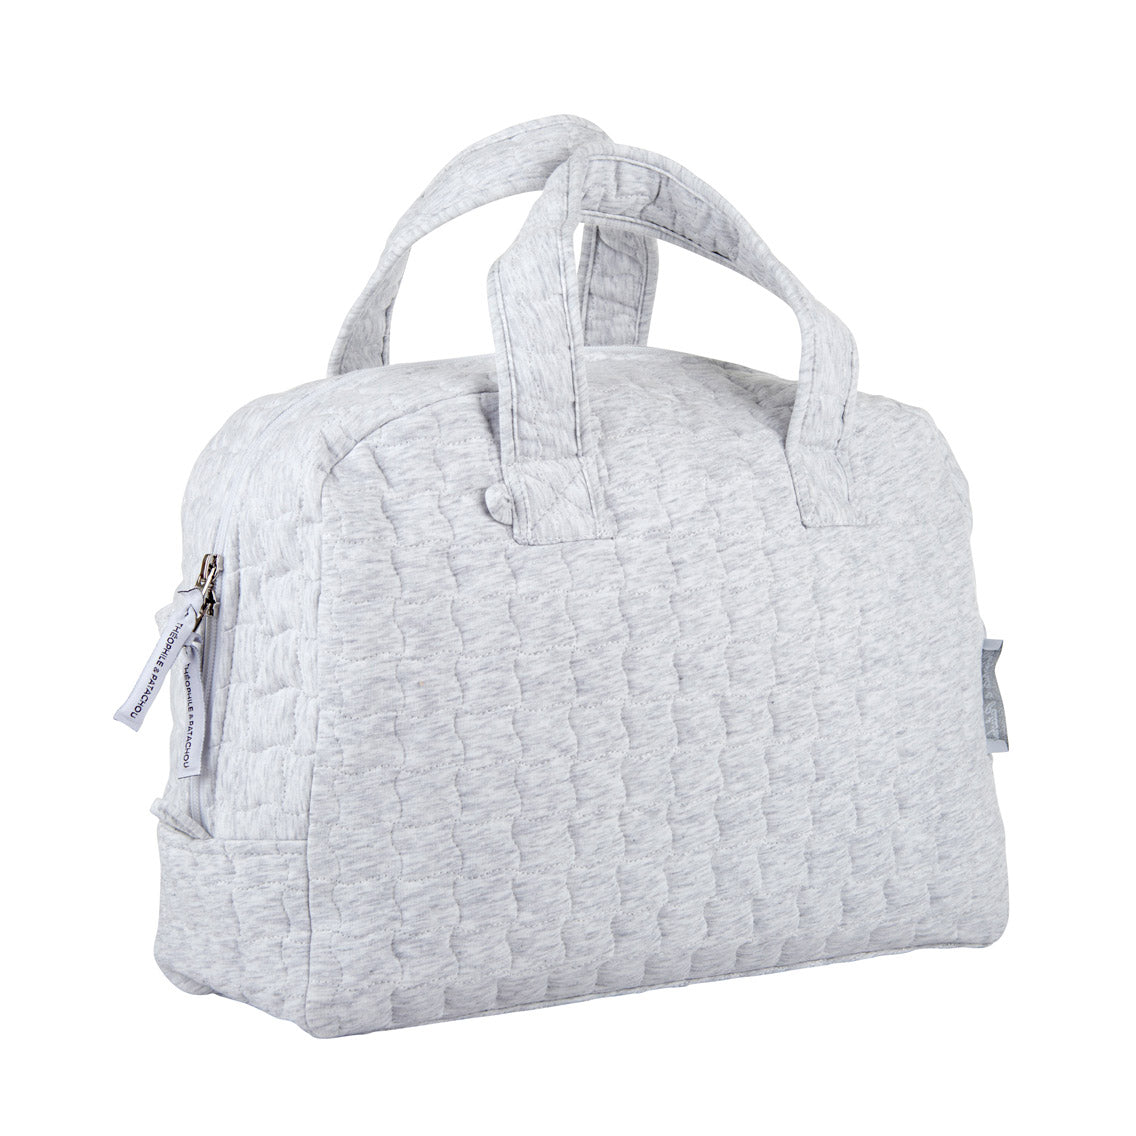 Theophile & Patachou Toiletry Bag Quilted - Grey